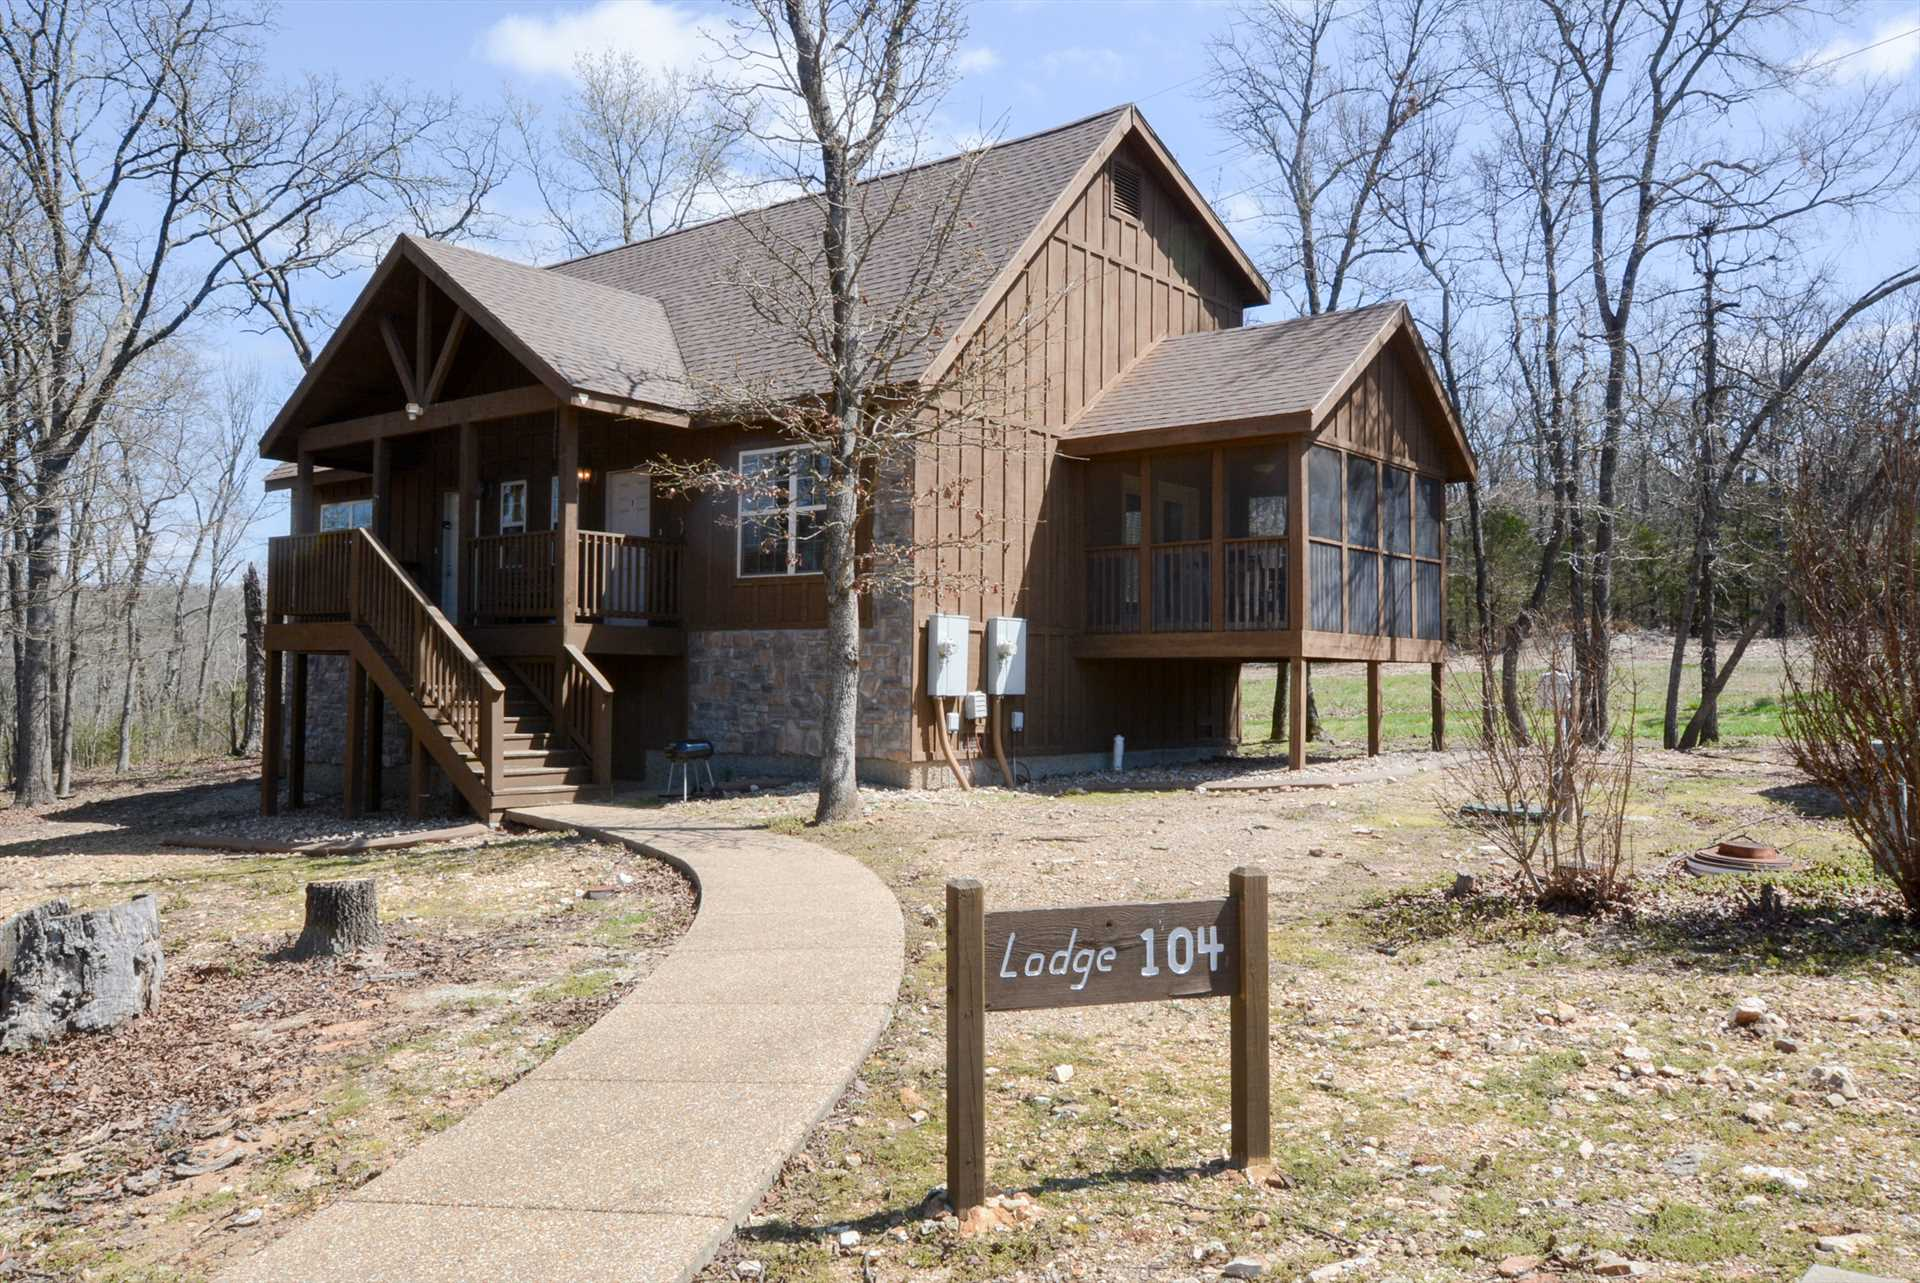 This lodge is in a beautiful wooded location while still clo